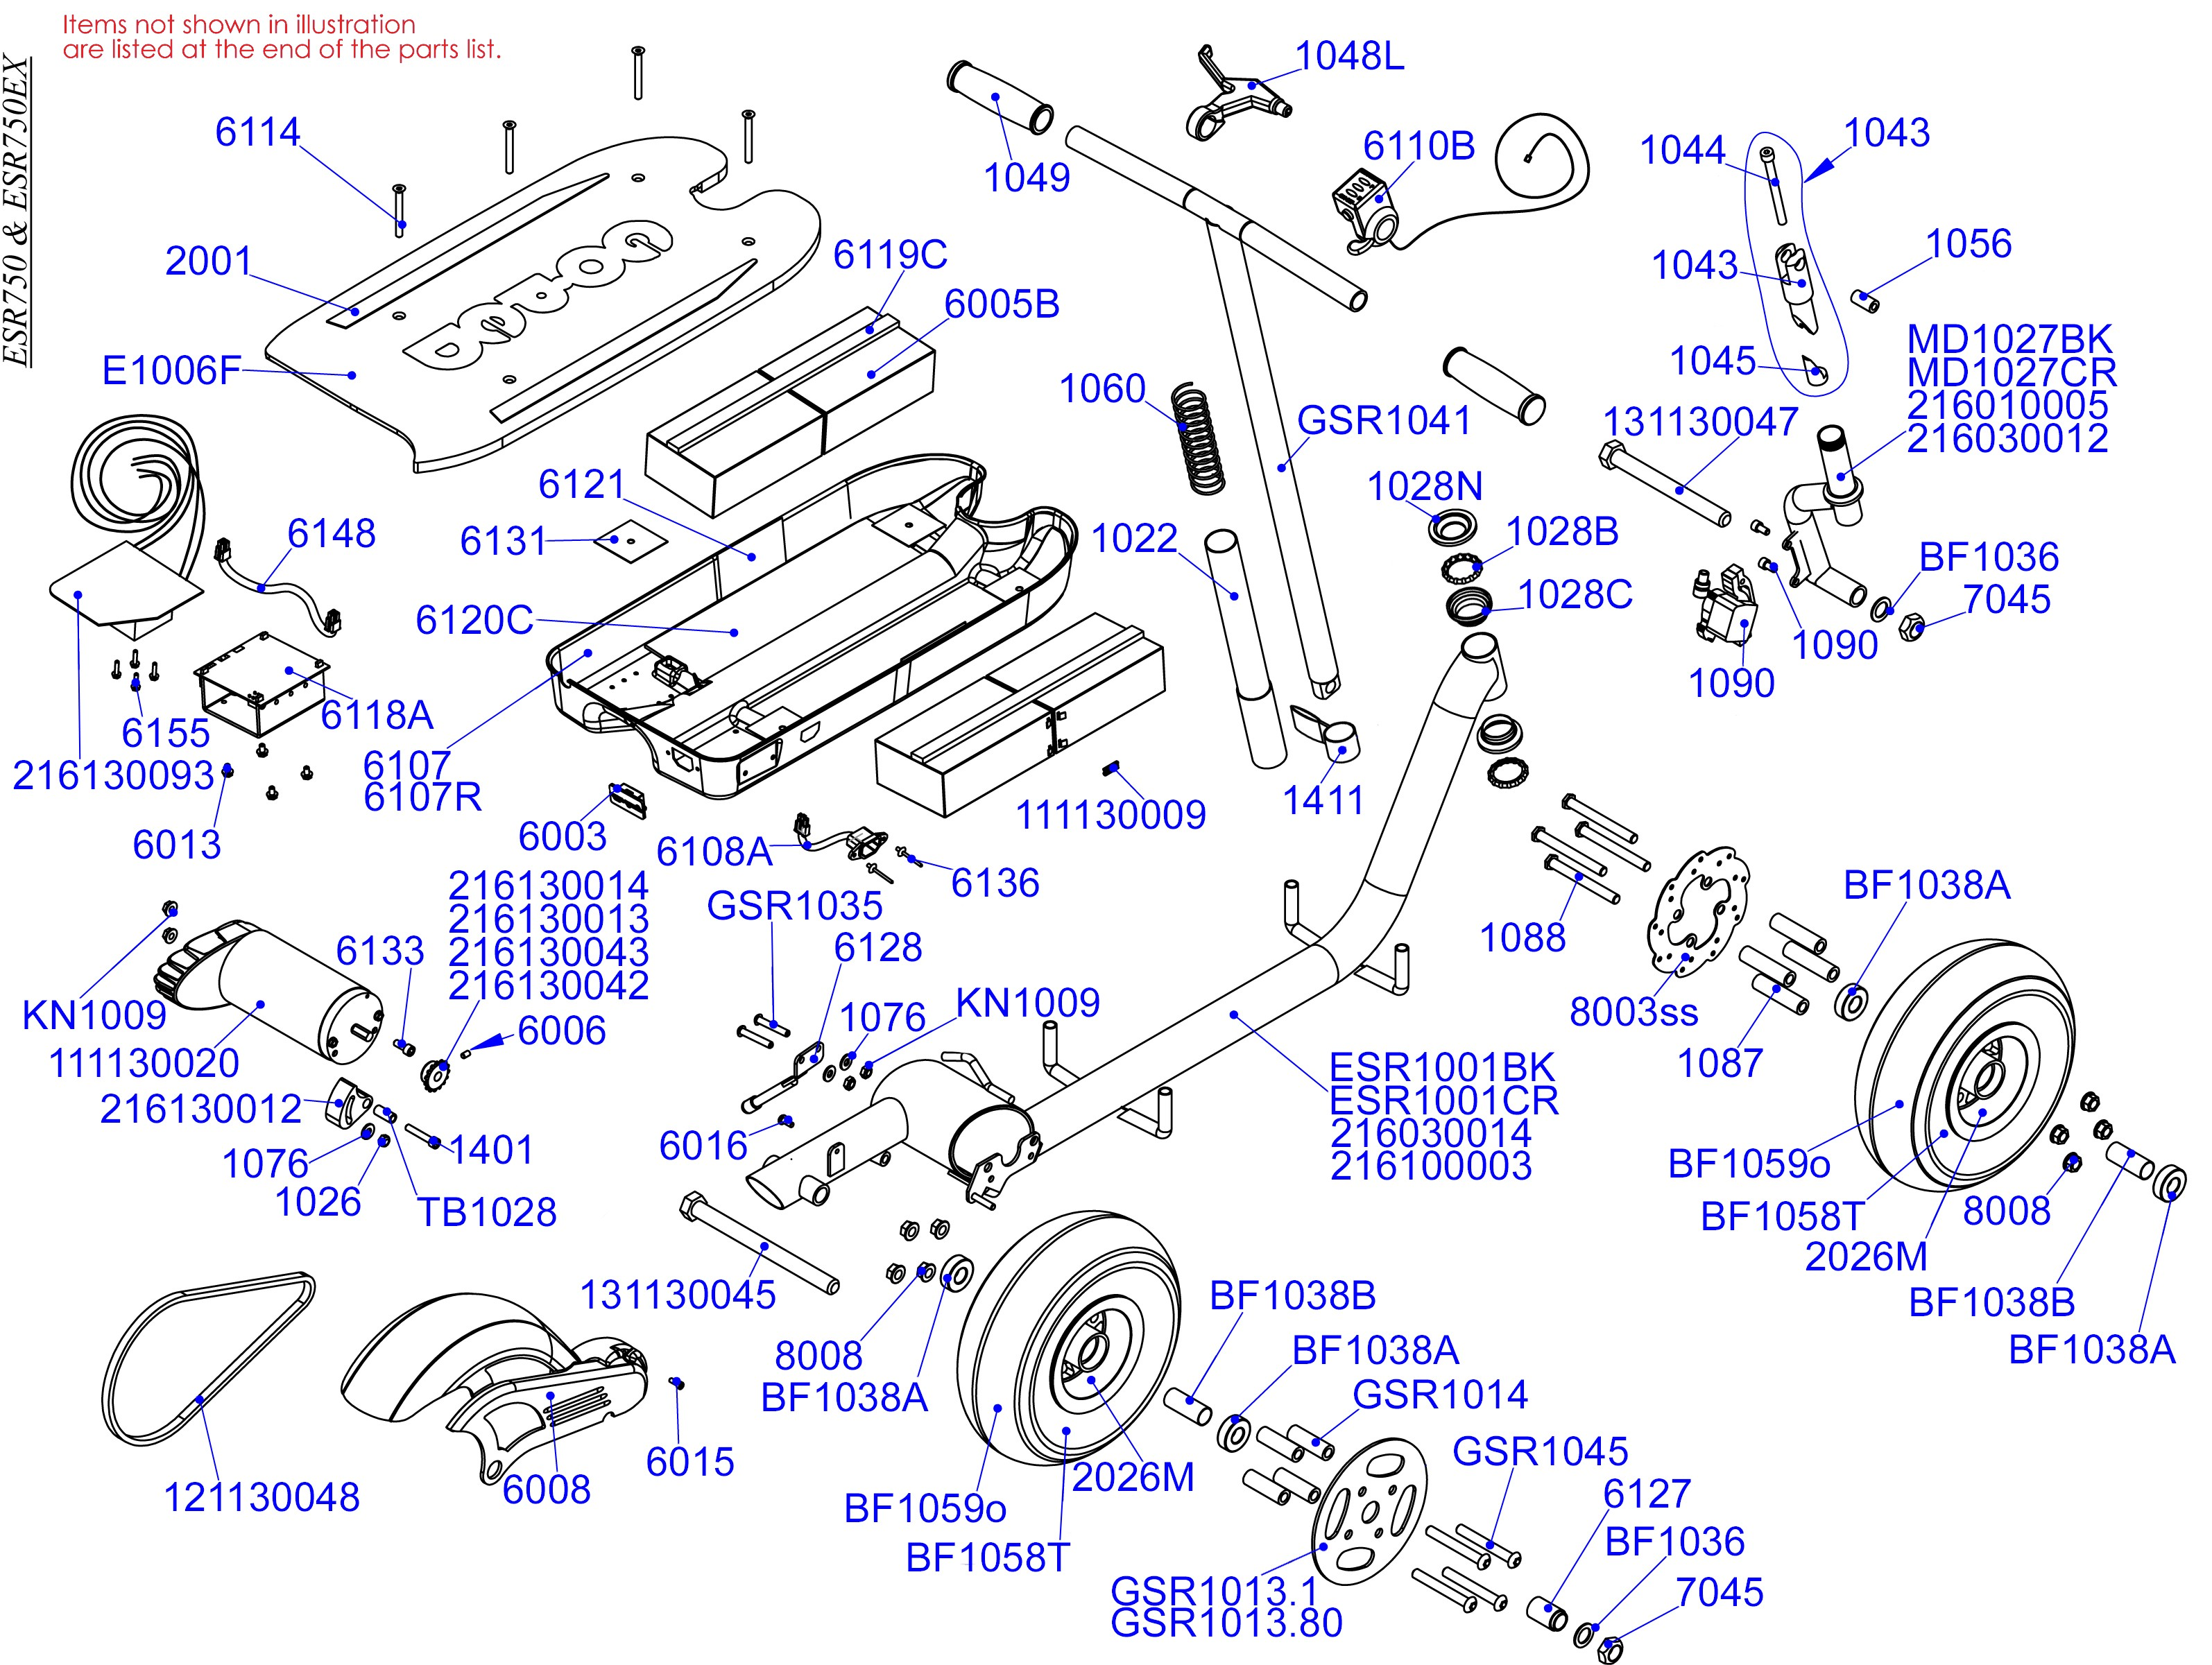 Electric Motor Parts Diagram Parts Electric Scooter Parts Esr 750 Of Electric Motor Parts Diagram Electric Motor Control Circuit Diagrams Motor Repalcement Parts and